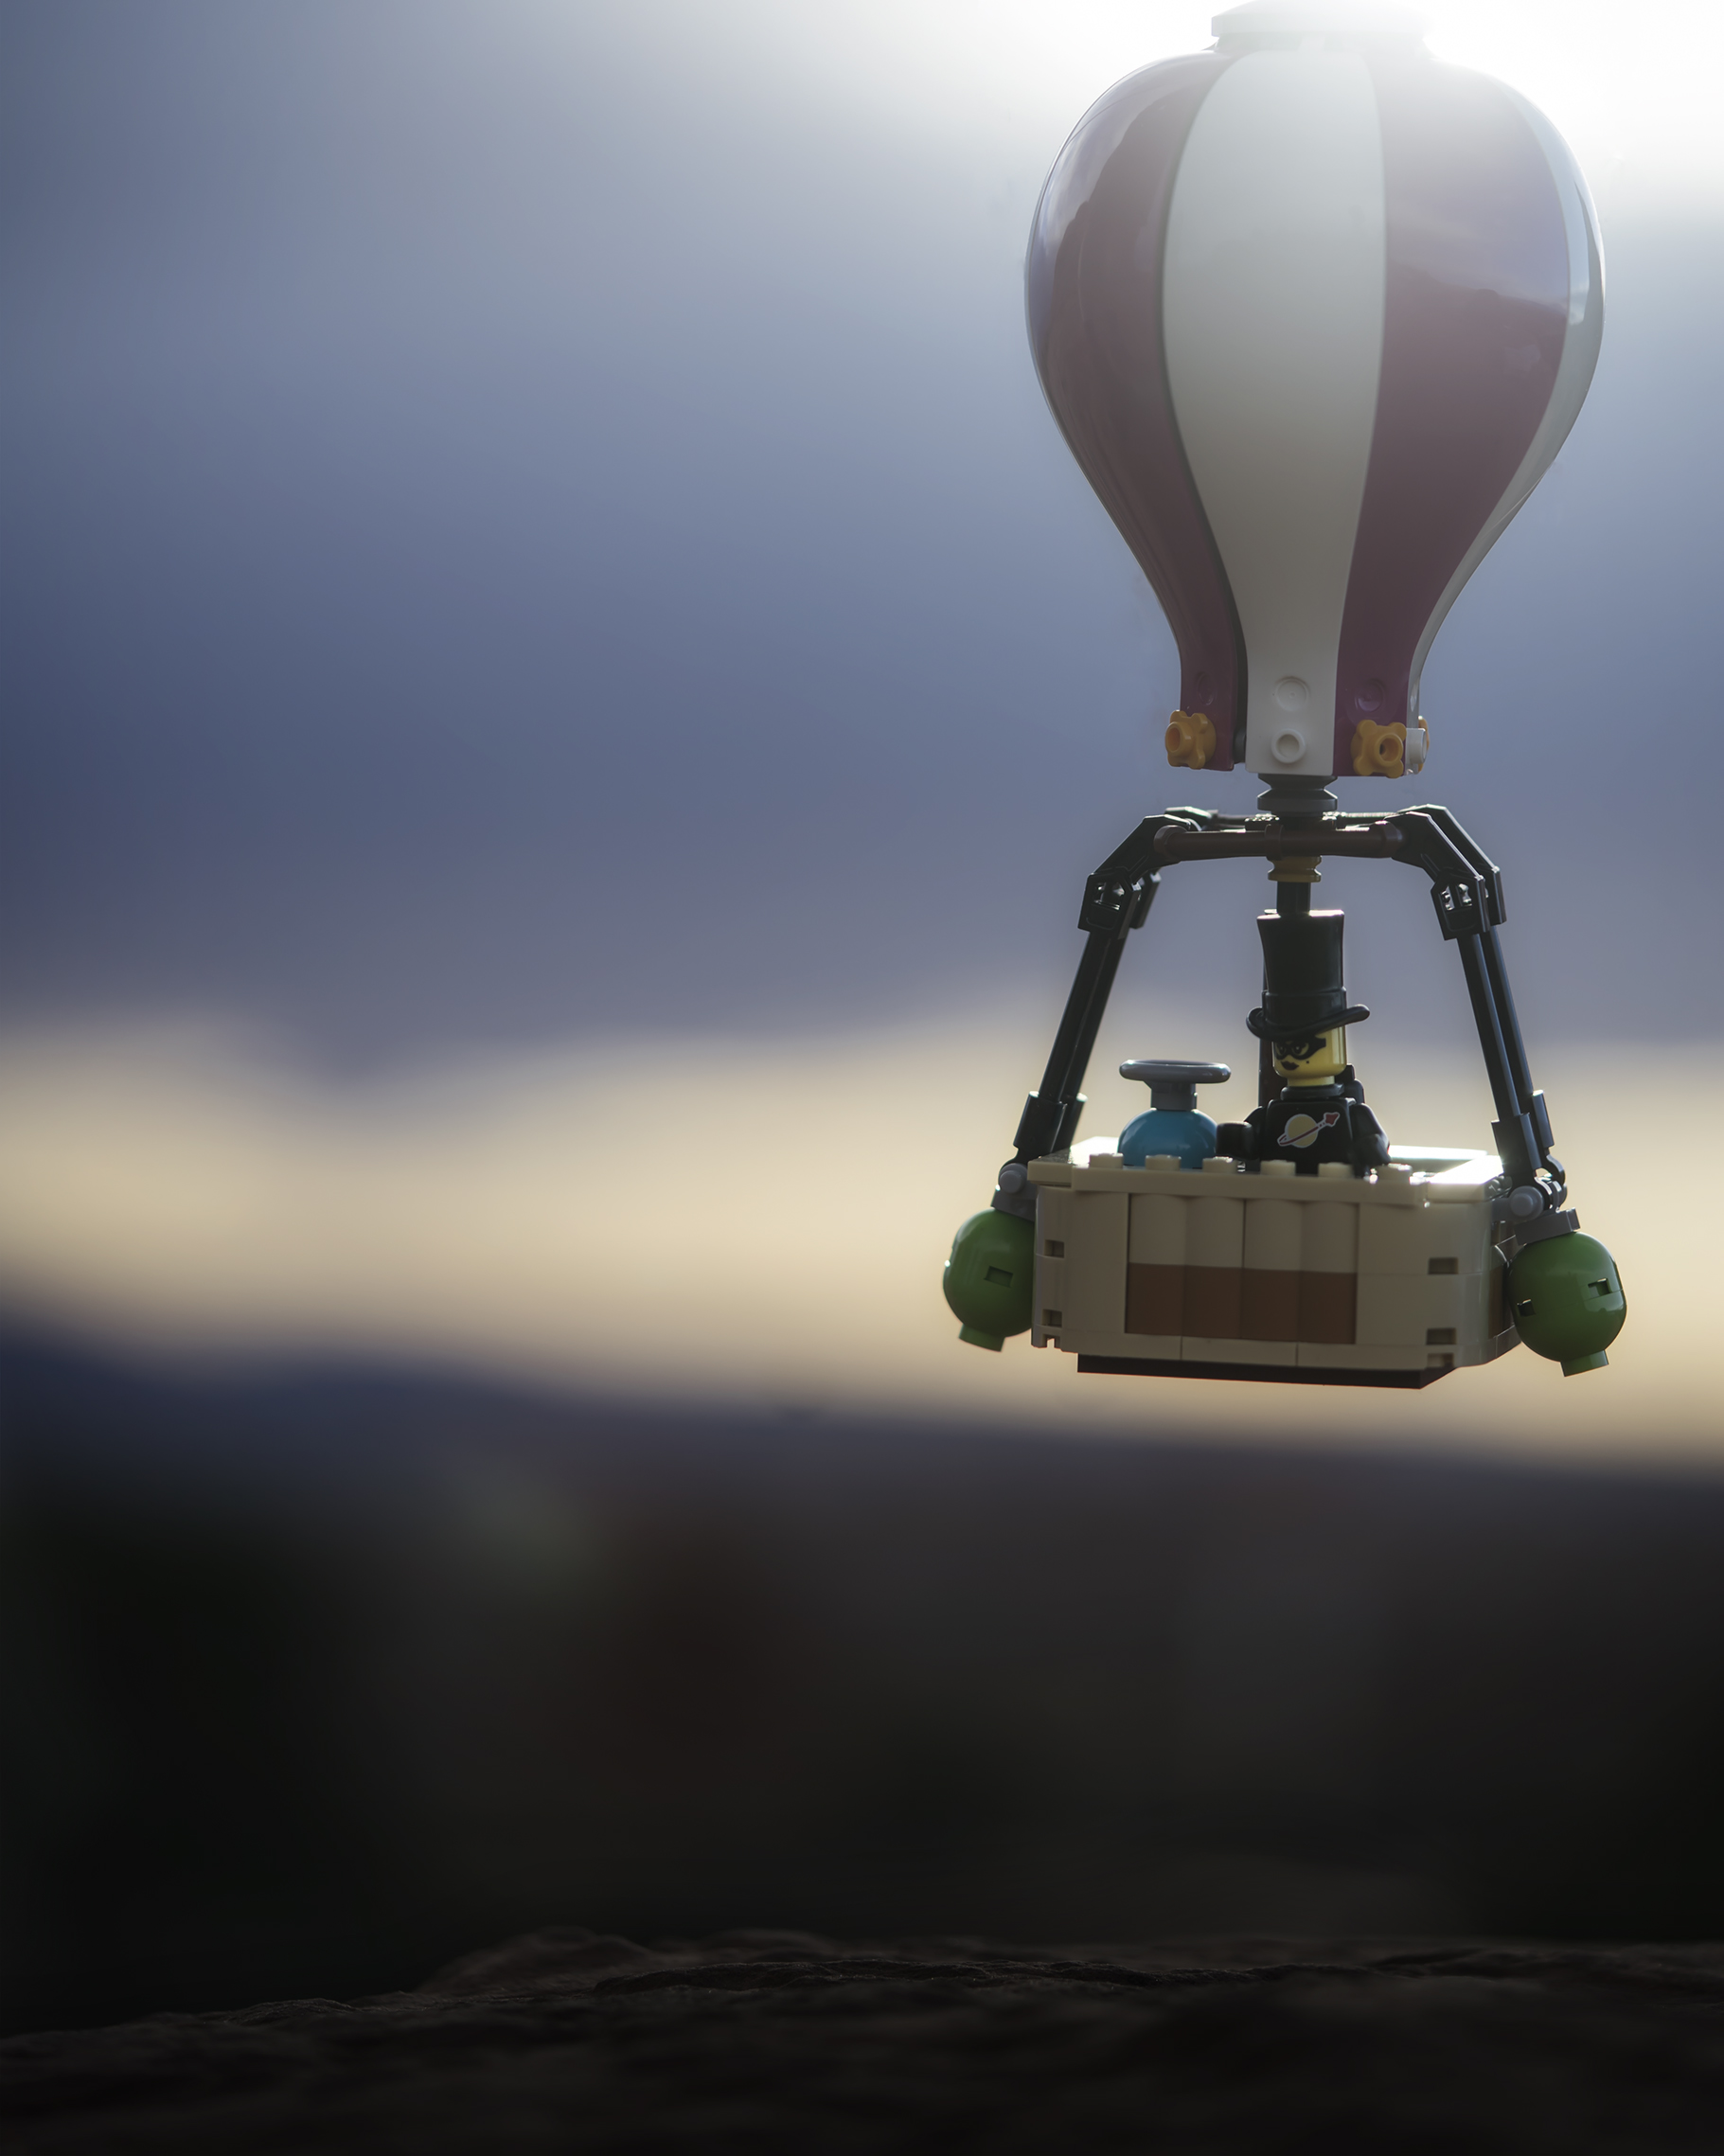 LEGO hot air ballon floats in the air with dark clouds looming in the distance.